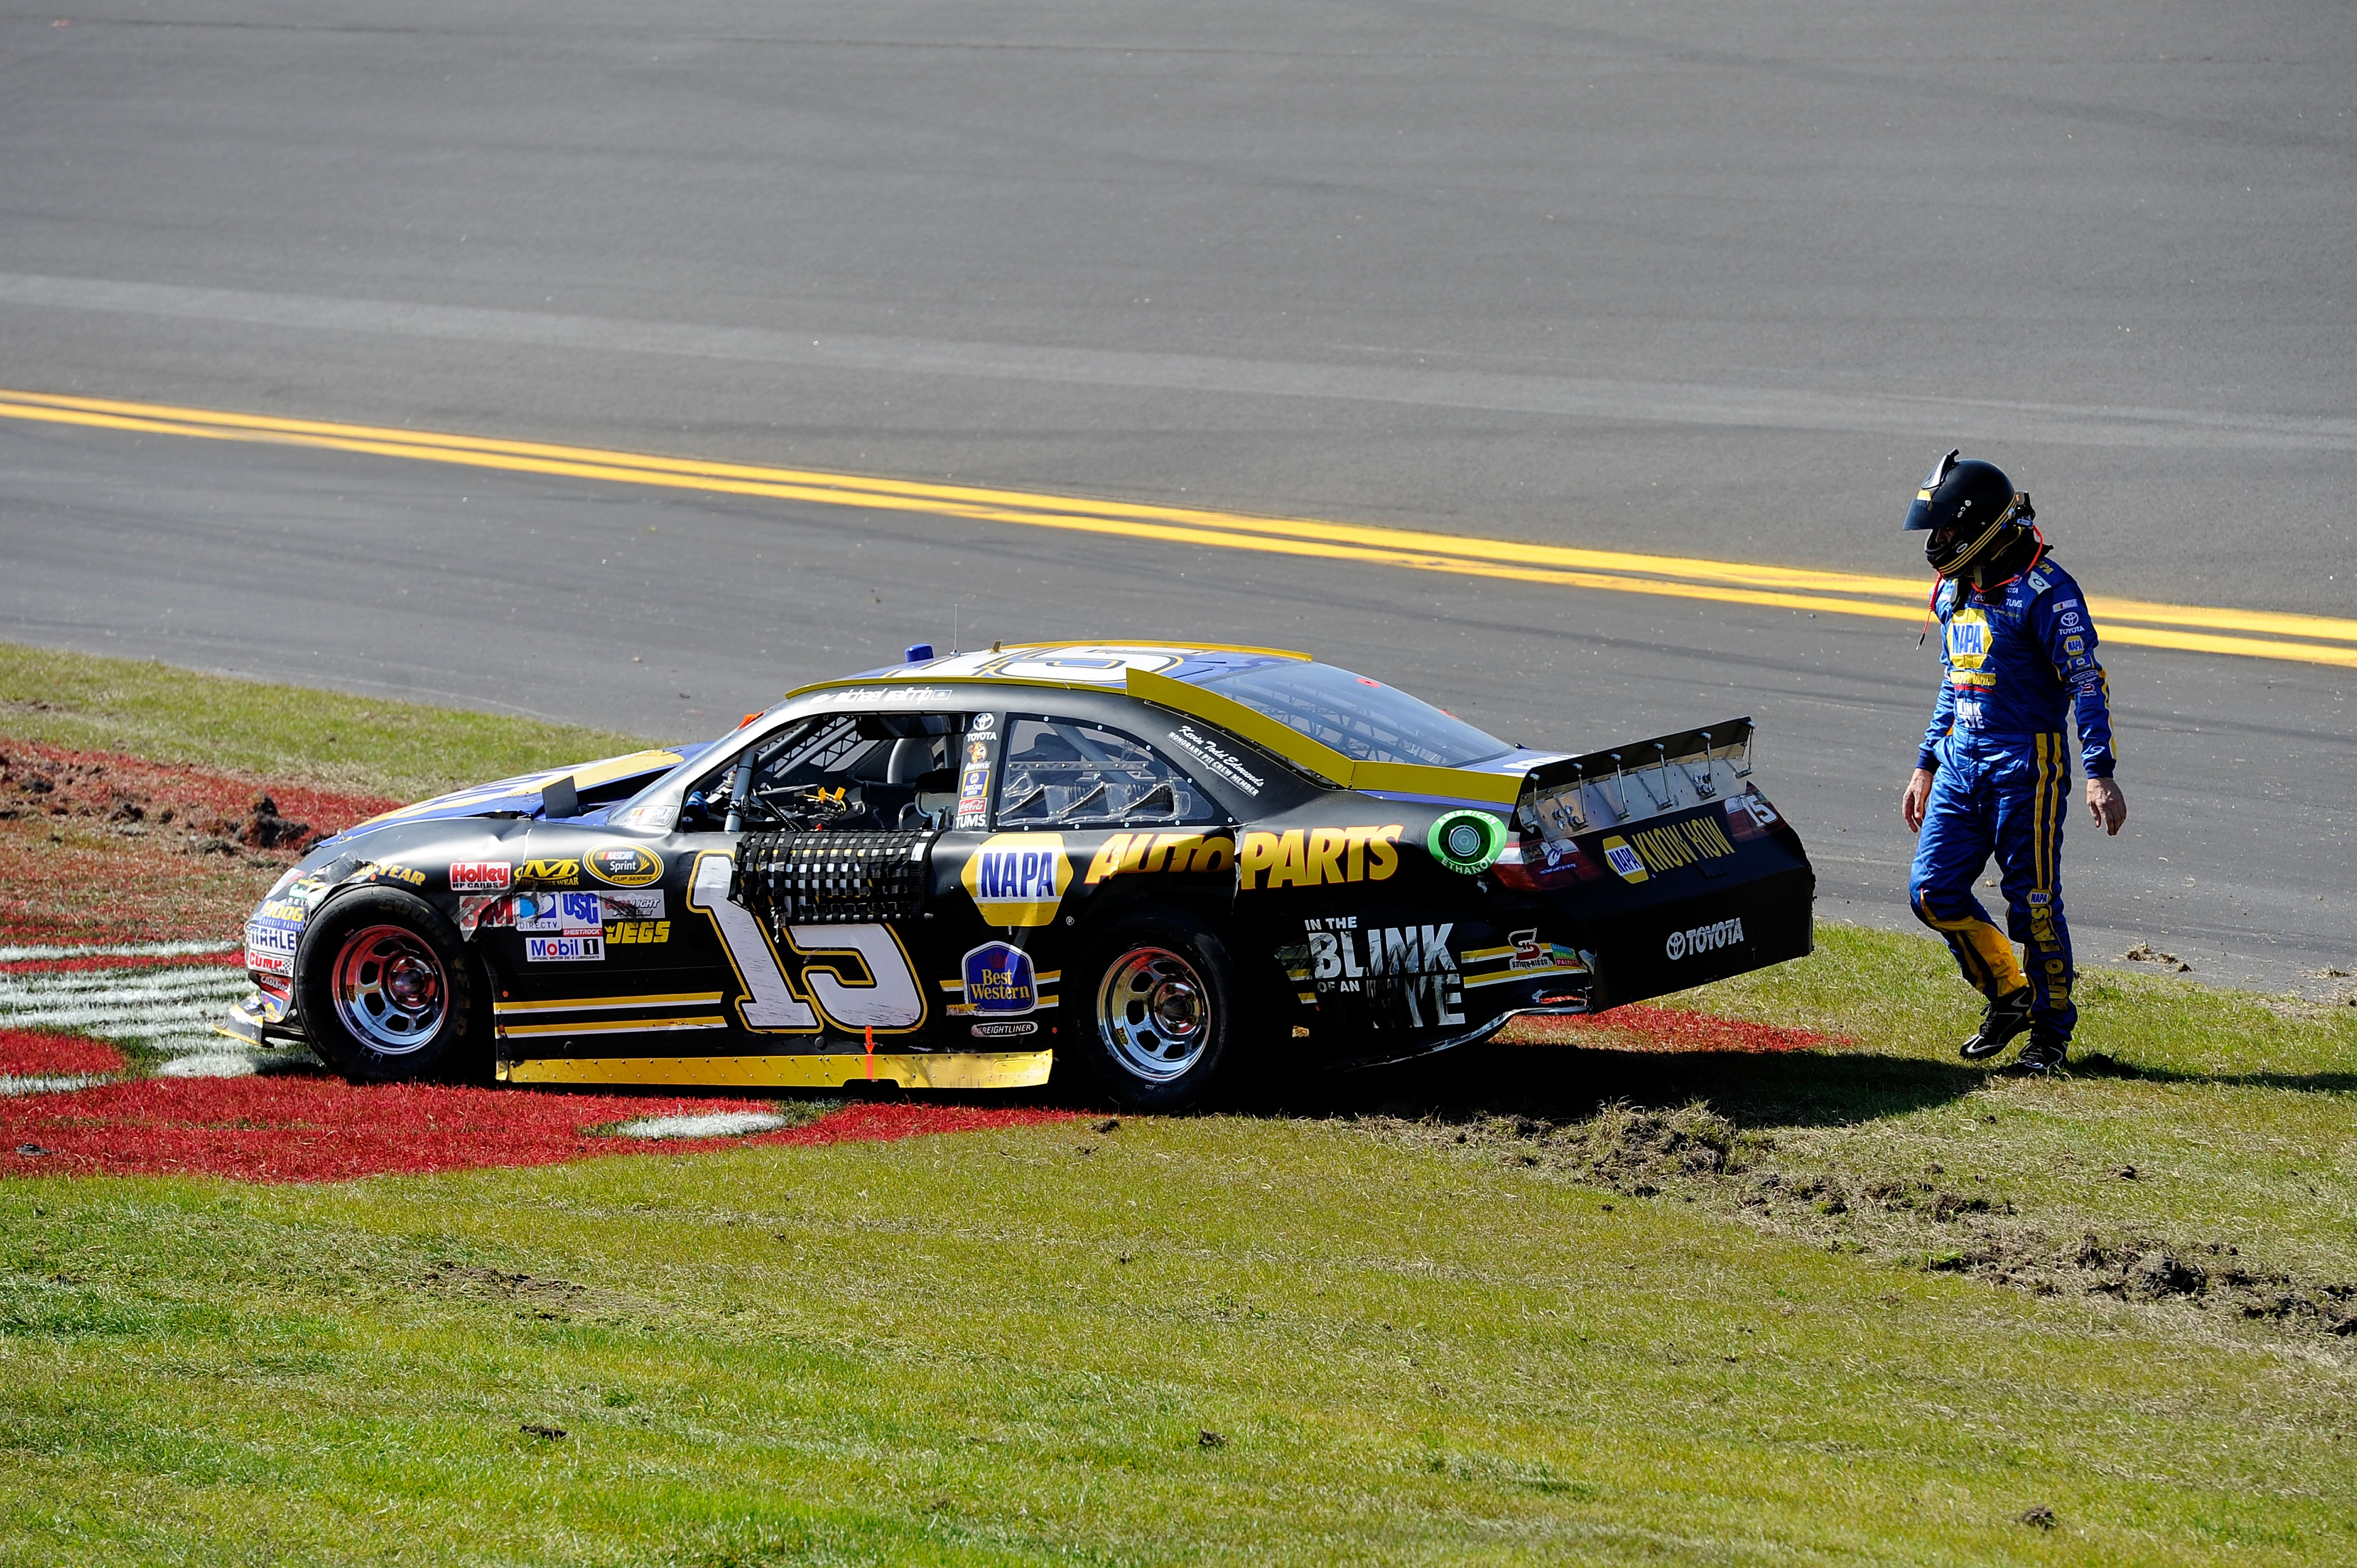 DAYTONA BEACH, FL - FEBRUARY 20:  Michael Waltrip, driver of the #15 NAPA Auto Parts Toyota, looks at his car after an incident during the NASCAR Sprint Cup Series Daytona 500 at Daytona International Speedway on February 20, 2011 in Daytona Beach, Florid